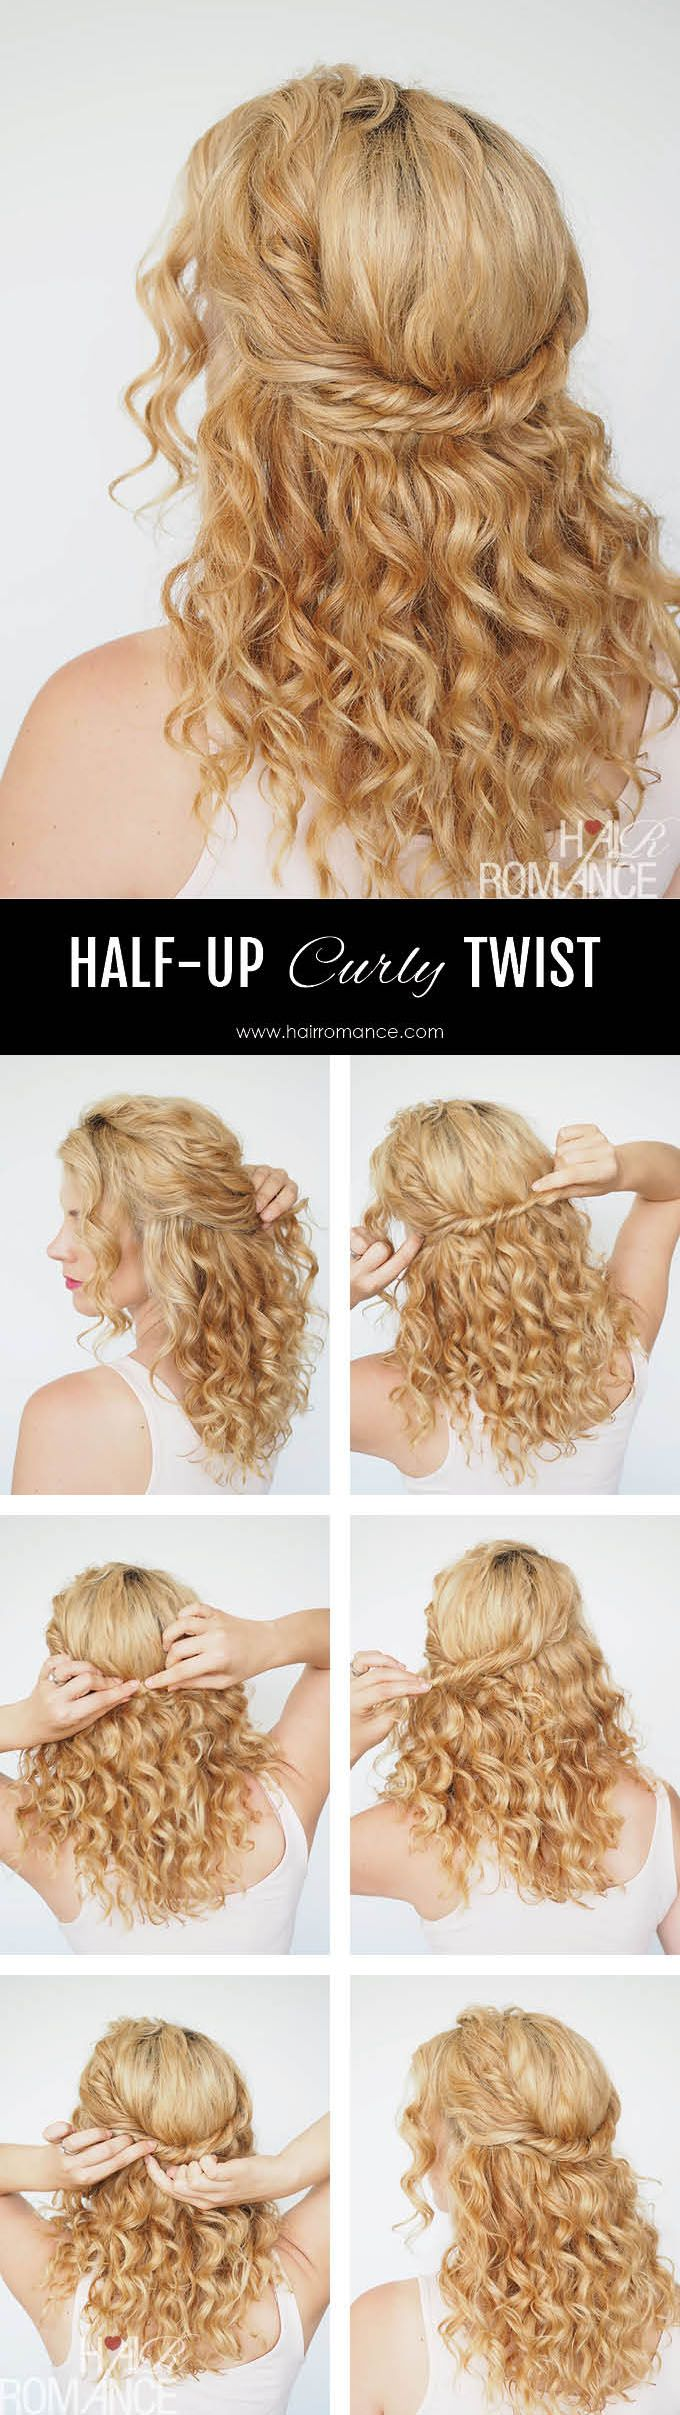 Chic and simple half-up twist tutorial (Hair Romance)